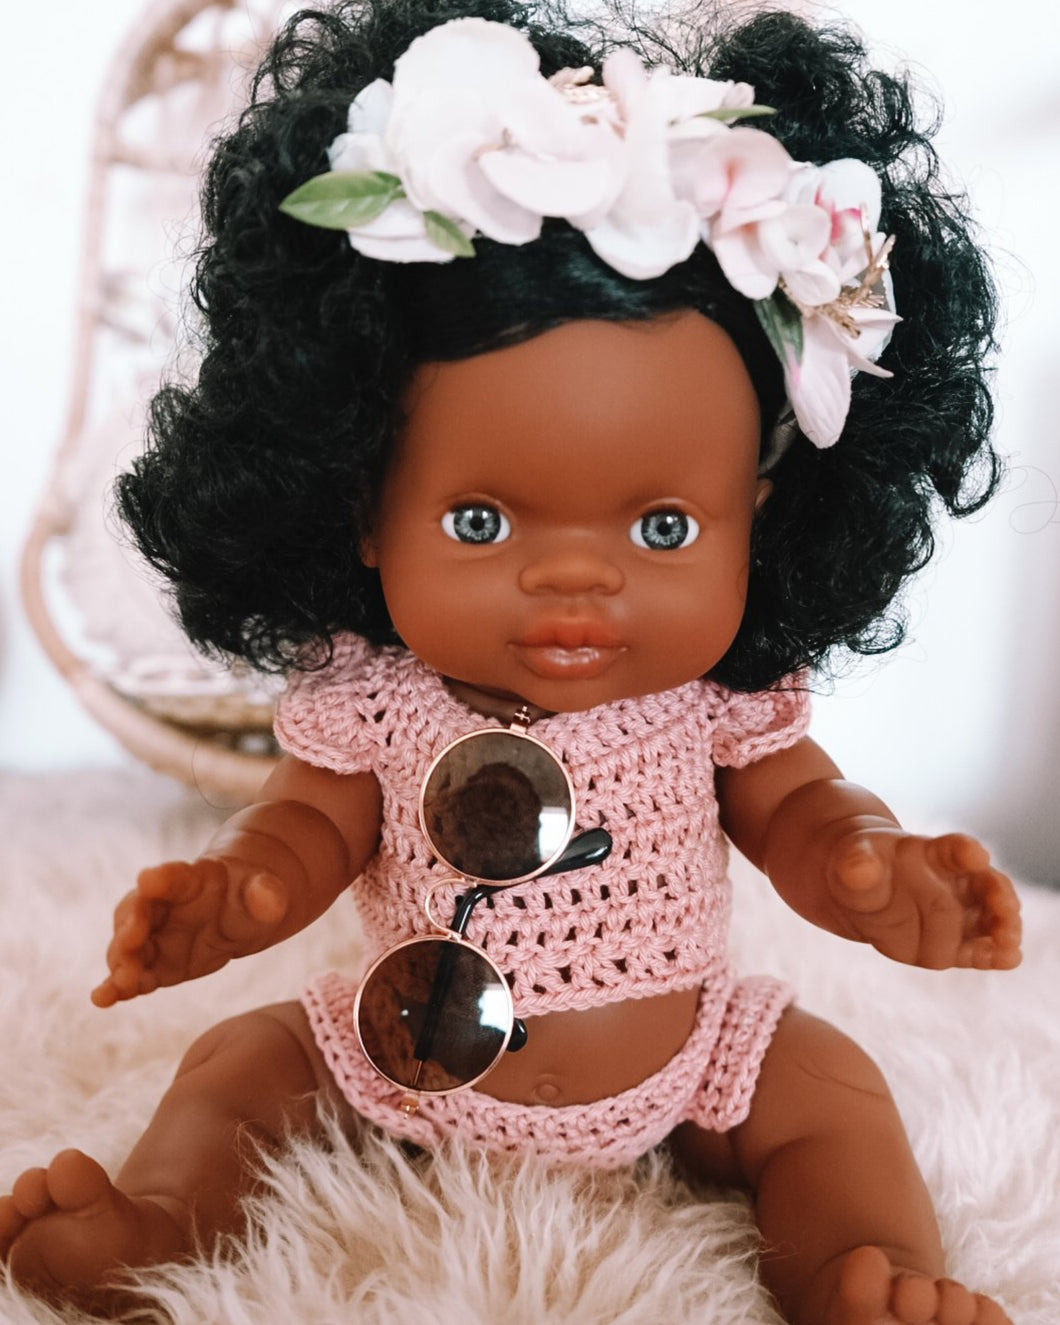 BABY DOLL GIFT SET - Paola Reina Jazmine baby doll dressed in boho crochet crop top & bloomer with rose gold framed sunglasses and flower crown.